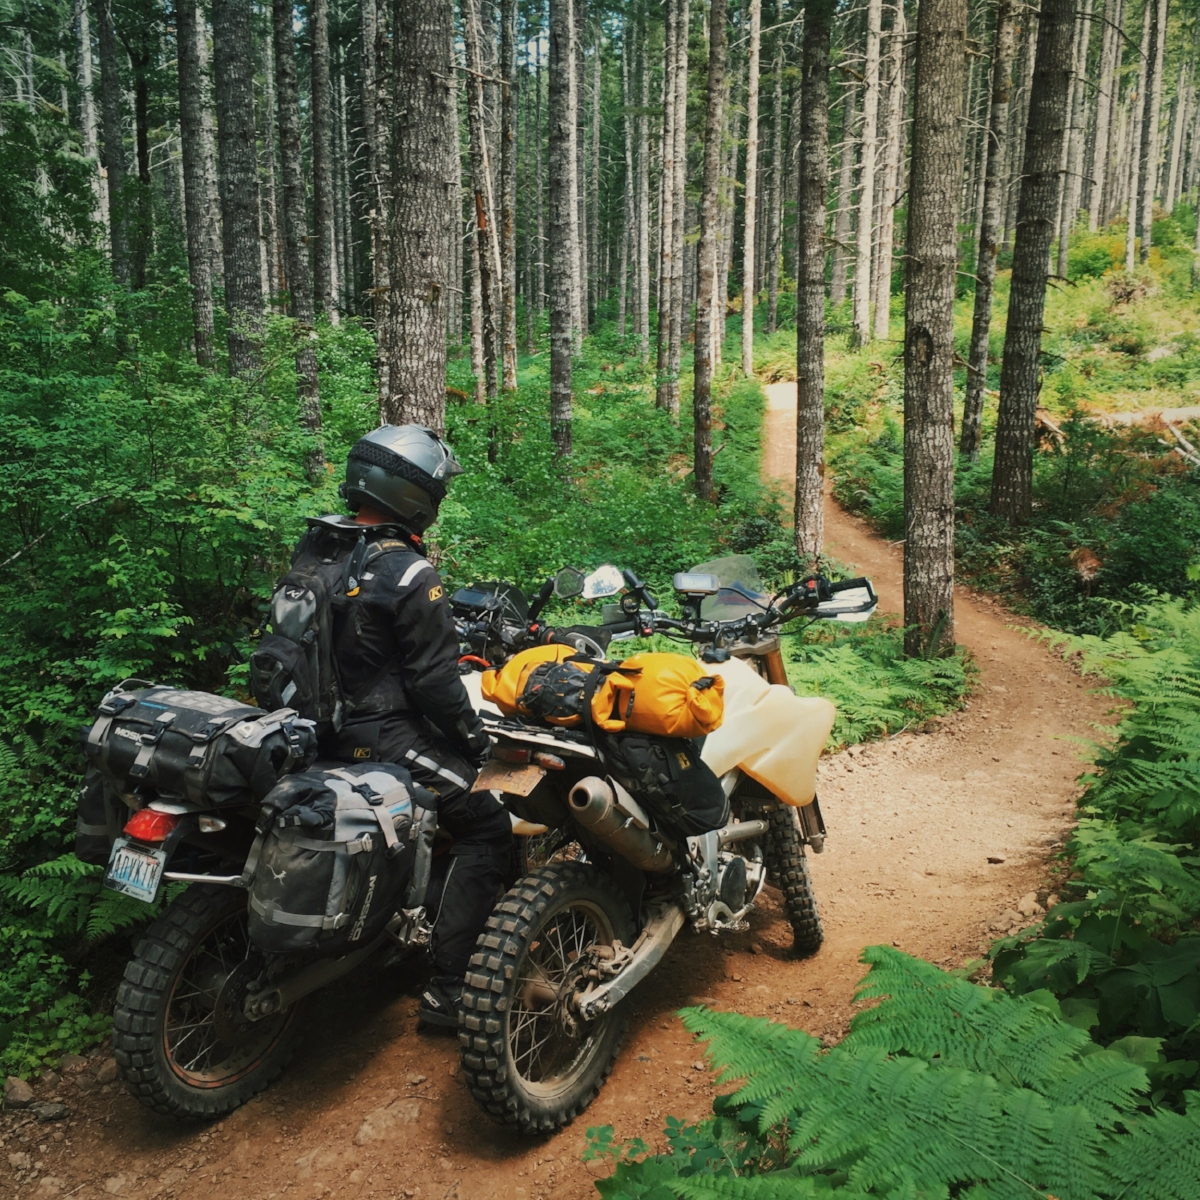 Roger's Camp Road, Tillamook Forest, Oregon. Showing Spencer all my favorite places. 🌲🚲🚲🌲